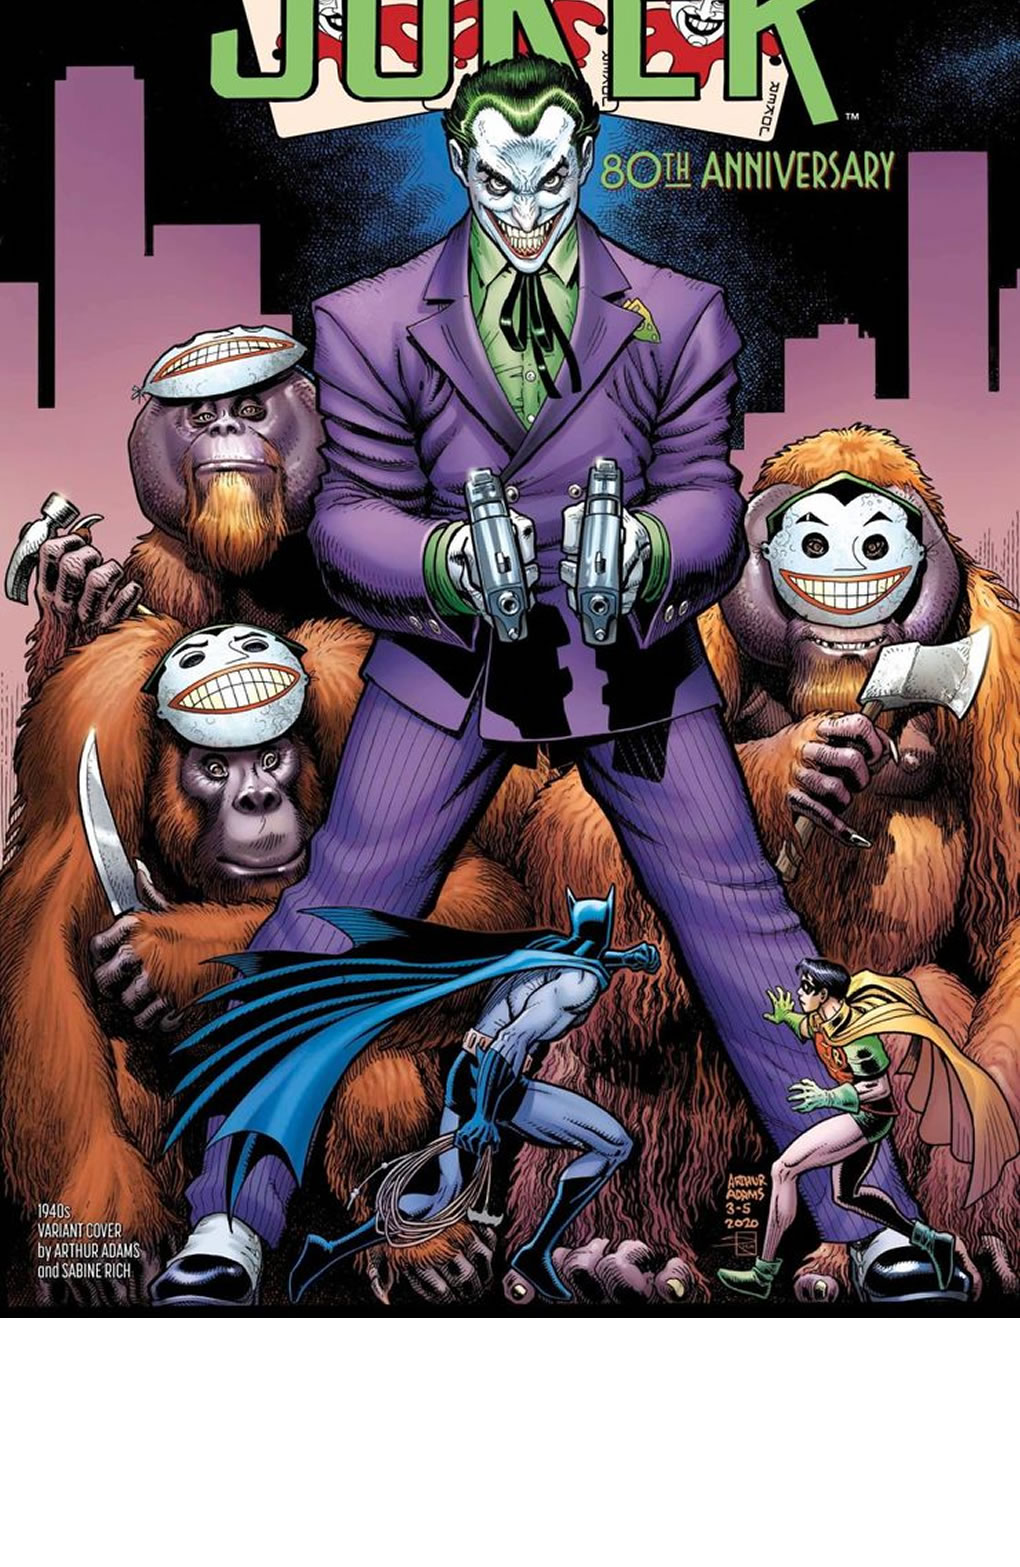 The JOKER 80th Anniversary: Variant Covers & Comic Preview